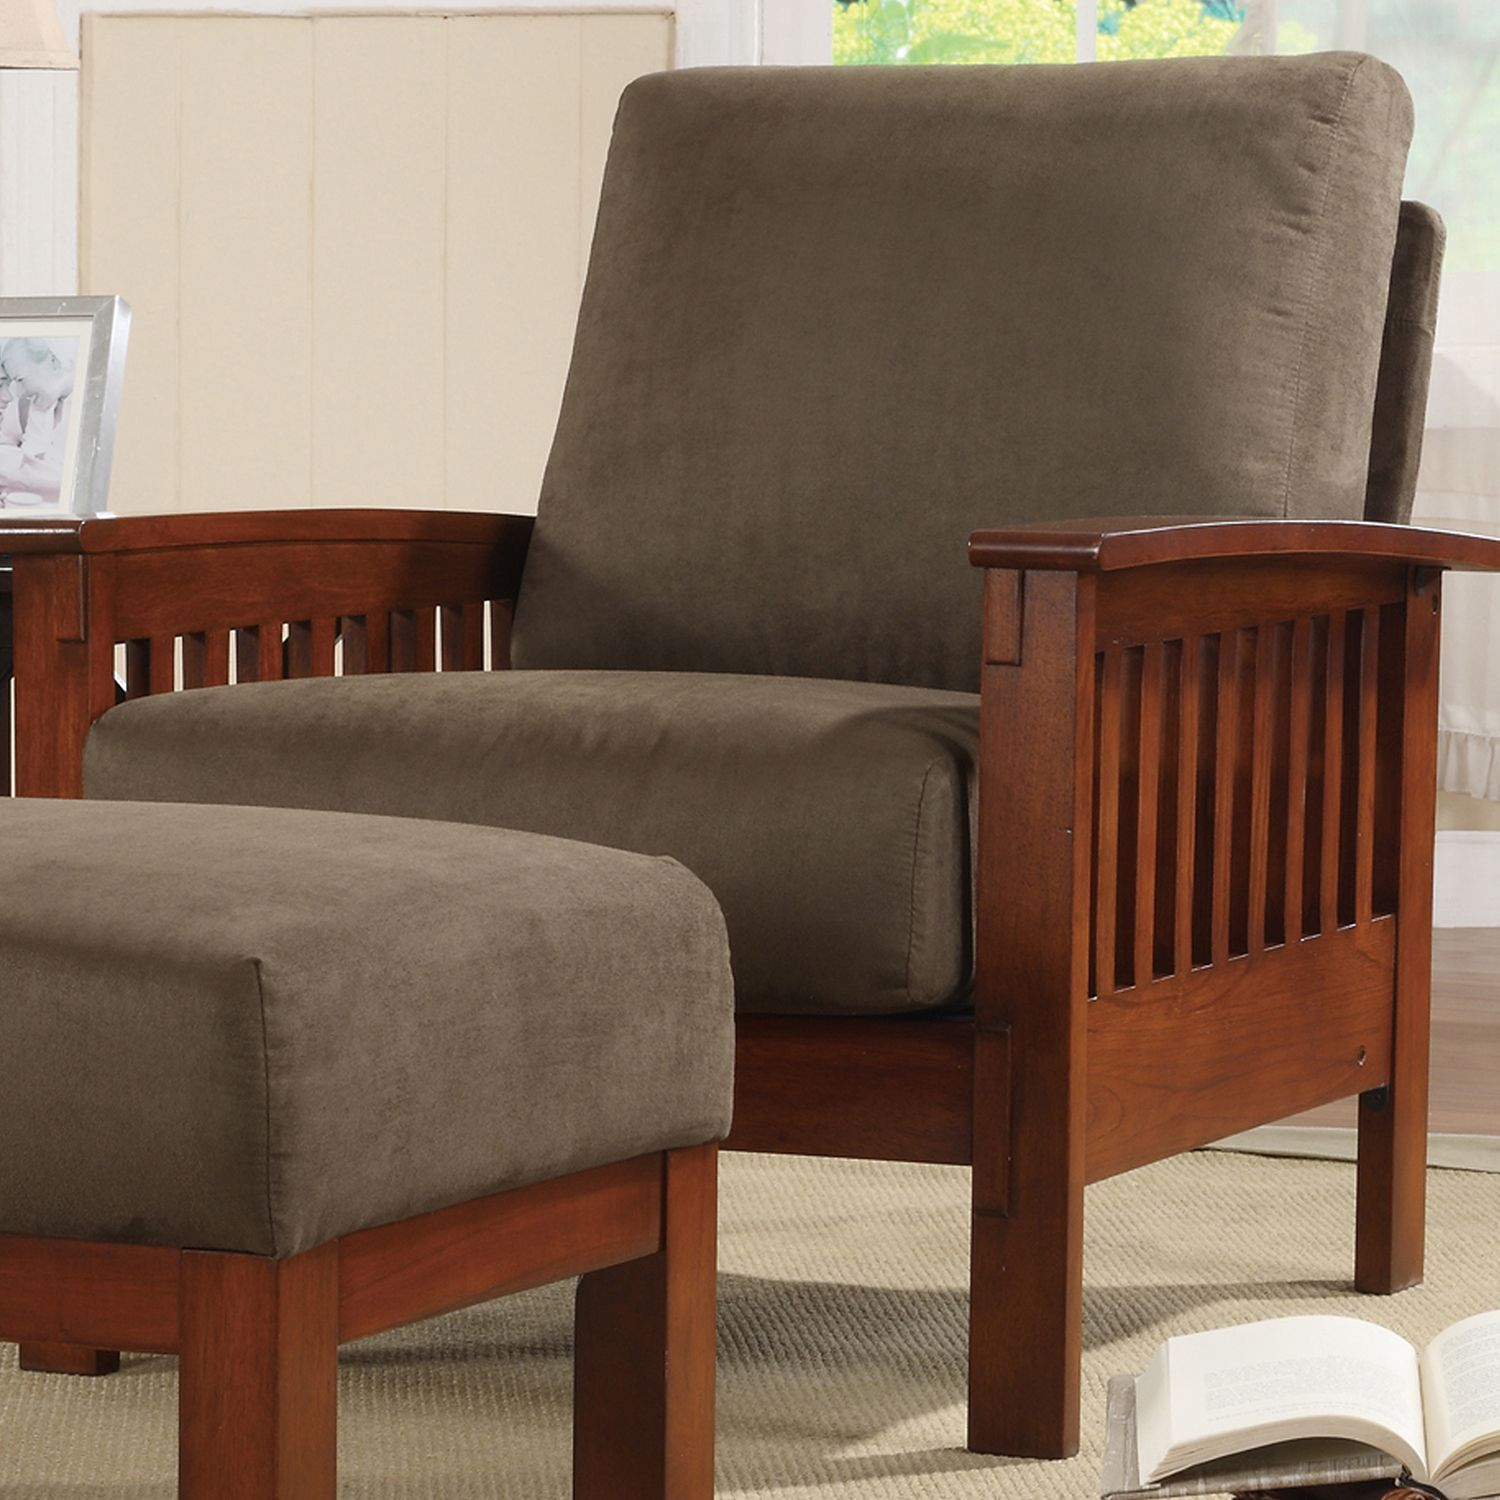 Mission Style Living Room Chair Hills Mission Style Oak Accent Chair By Tribecca Home By Tribecca